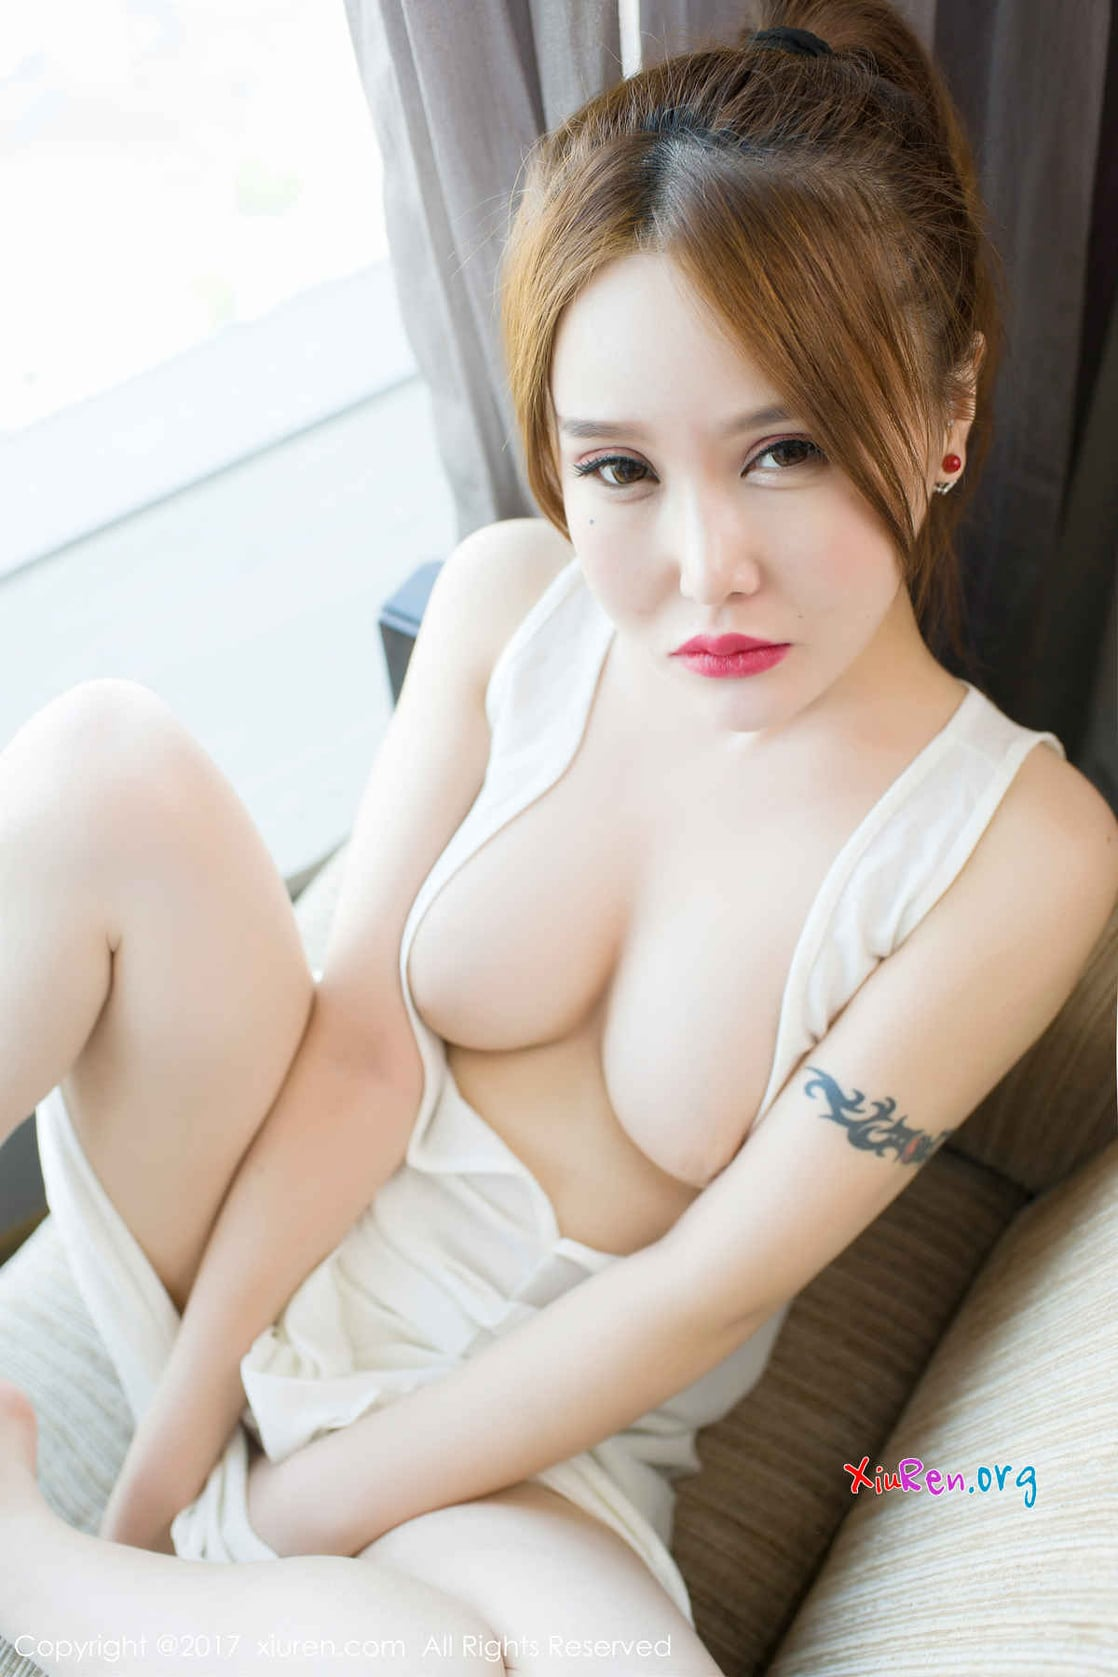 Call girl in Yining